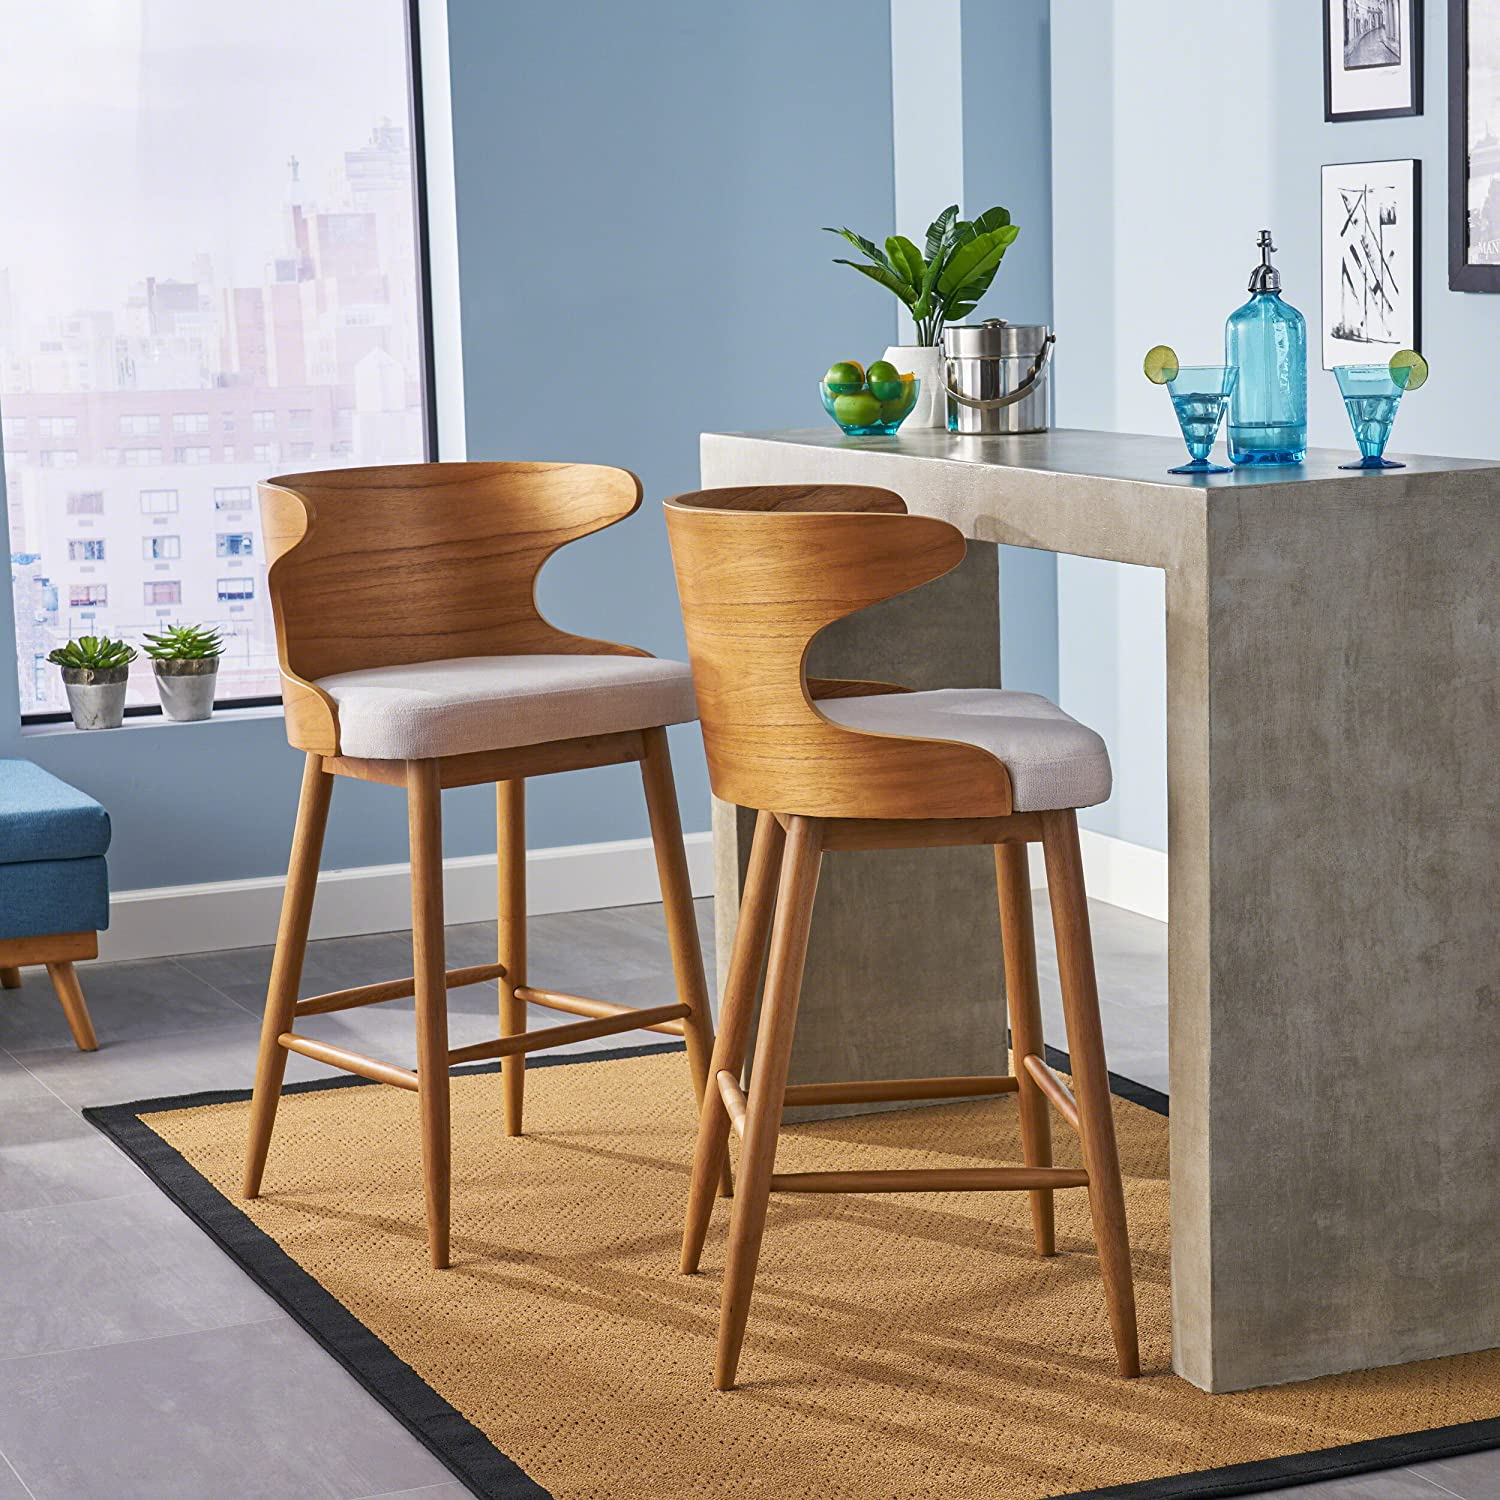 Christopher Knight Home 304583 Truda Mid Century Modern Fabric Barstools Set of 2 in Light Beige